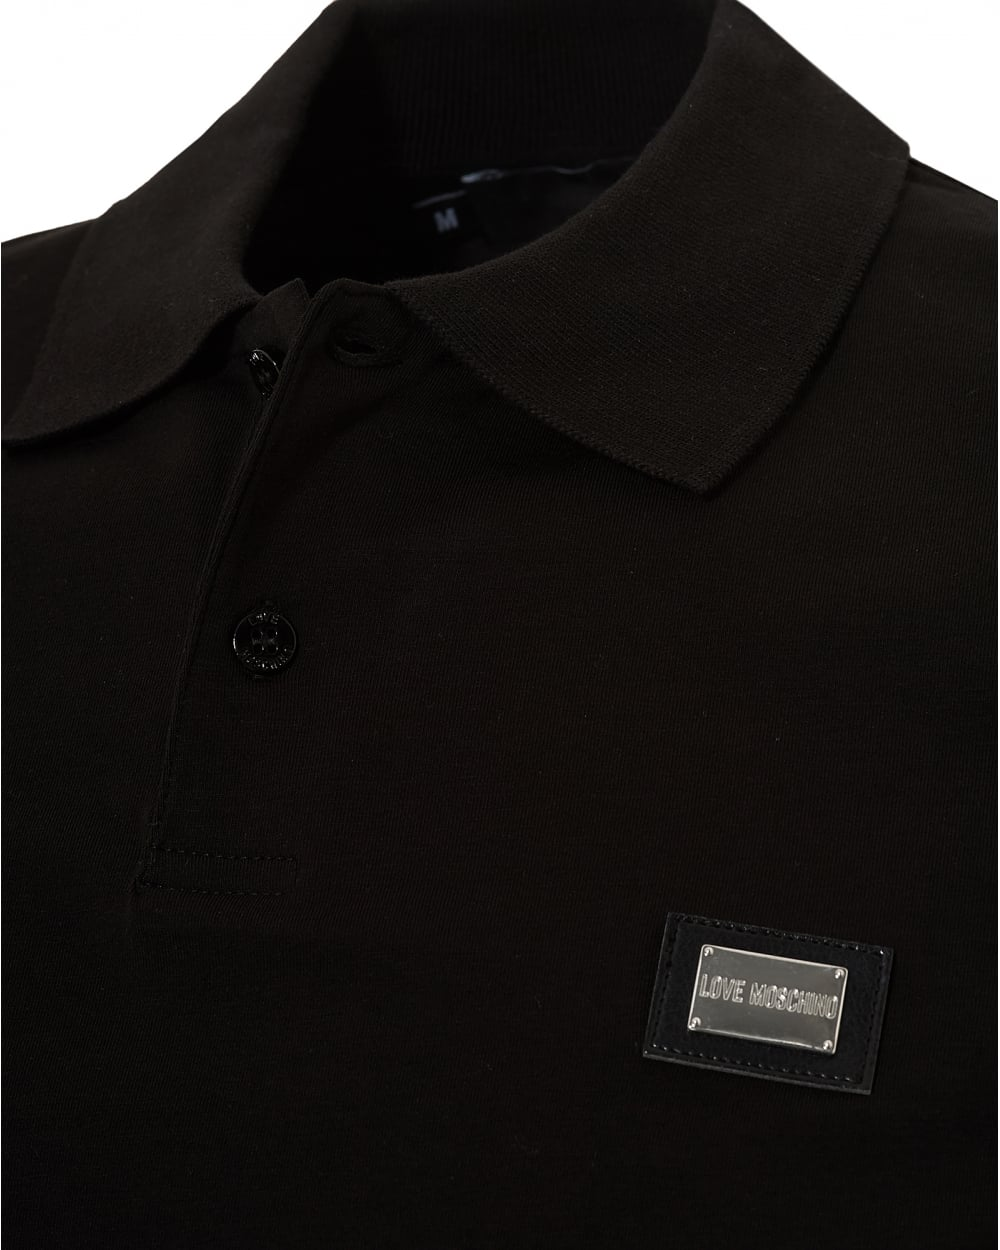 a5864c97f694e Love Moschino Mens Plain Badge Polo Shirt